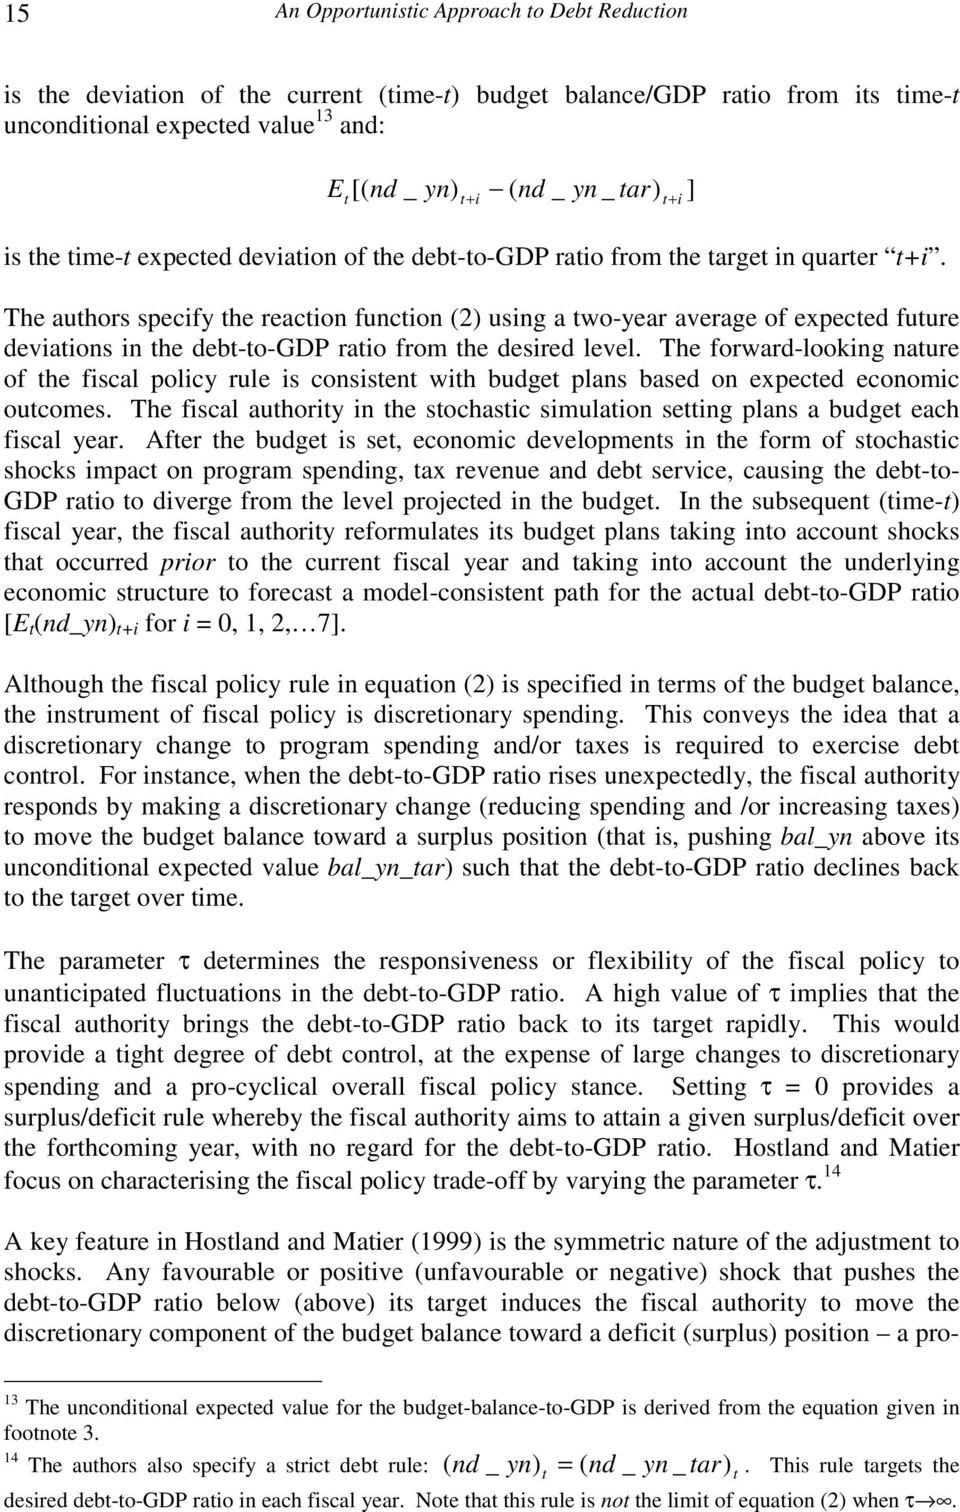 The authors specify the reaction function (2) using a two-year average of expected future deviations in the debt-to-gdp ratio from the desired level.